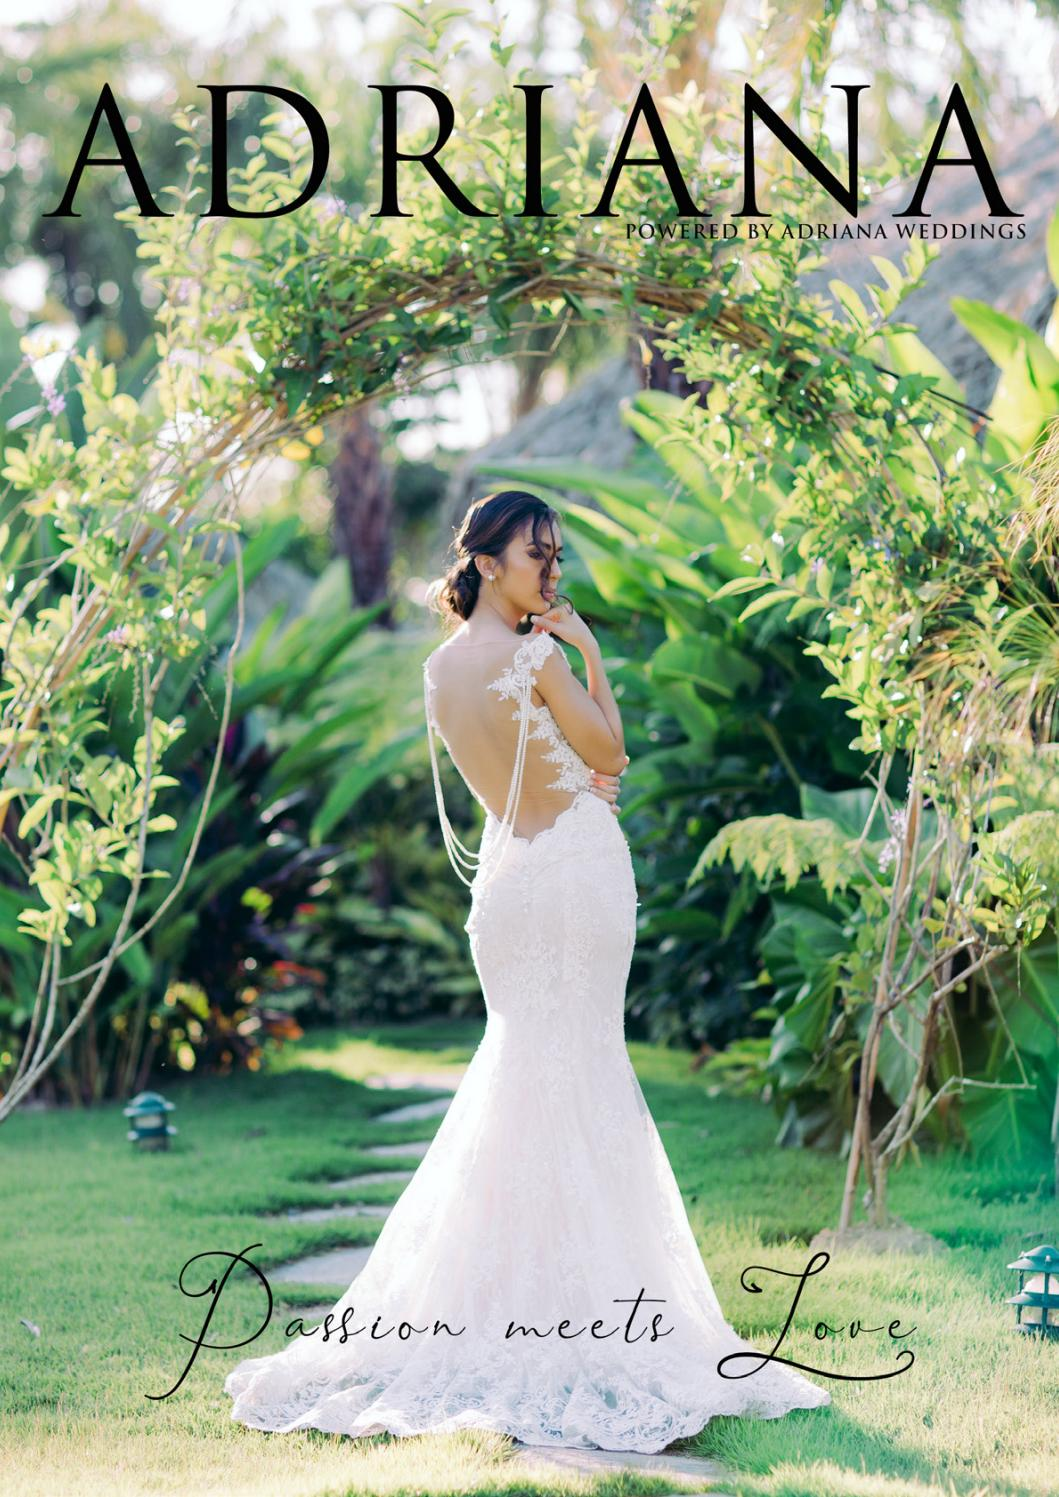 Adriana Weddings Destination Weddings Issue Iii By Adriana